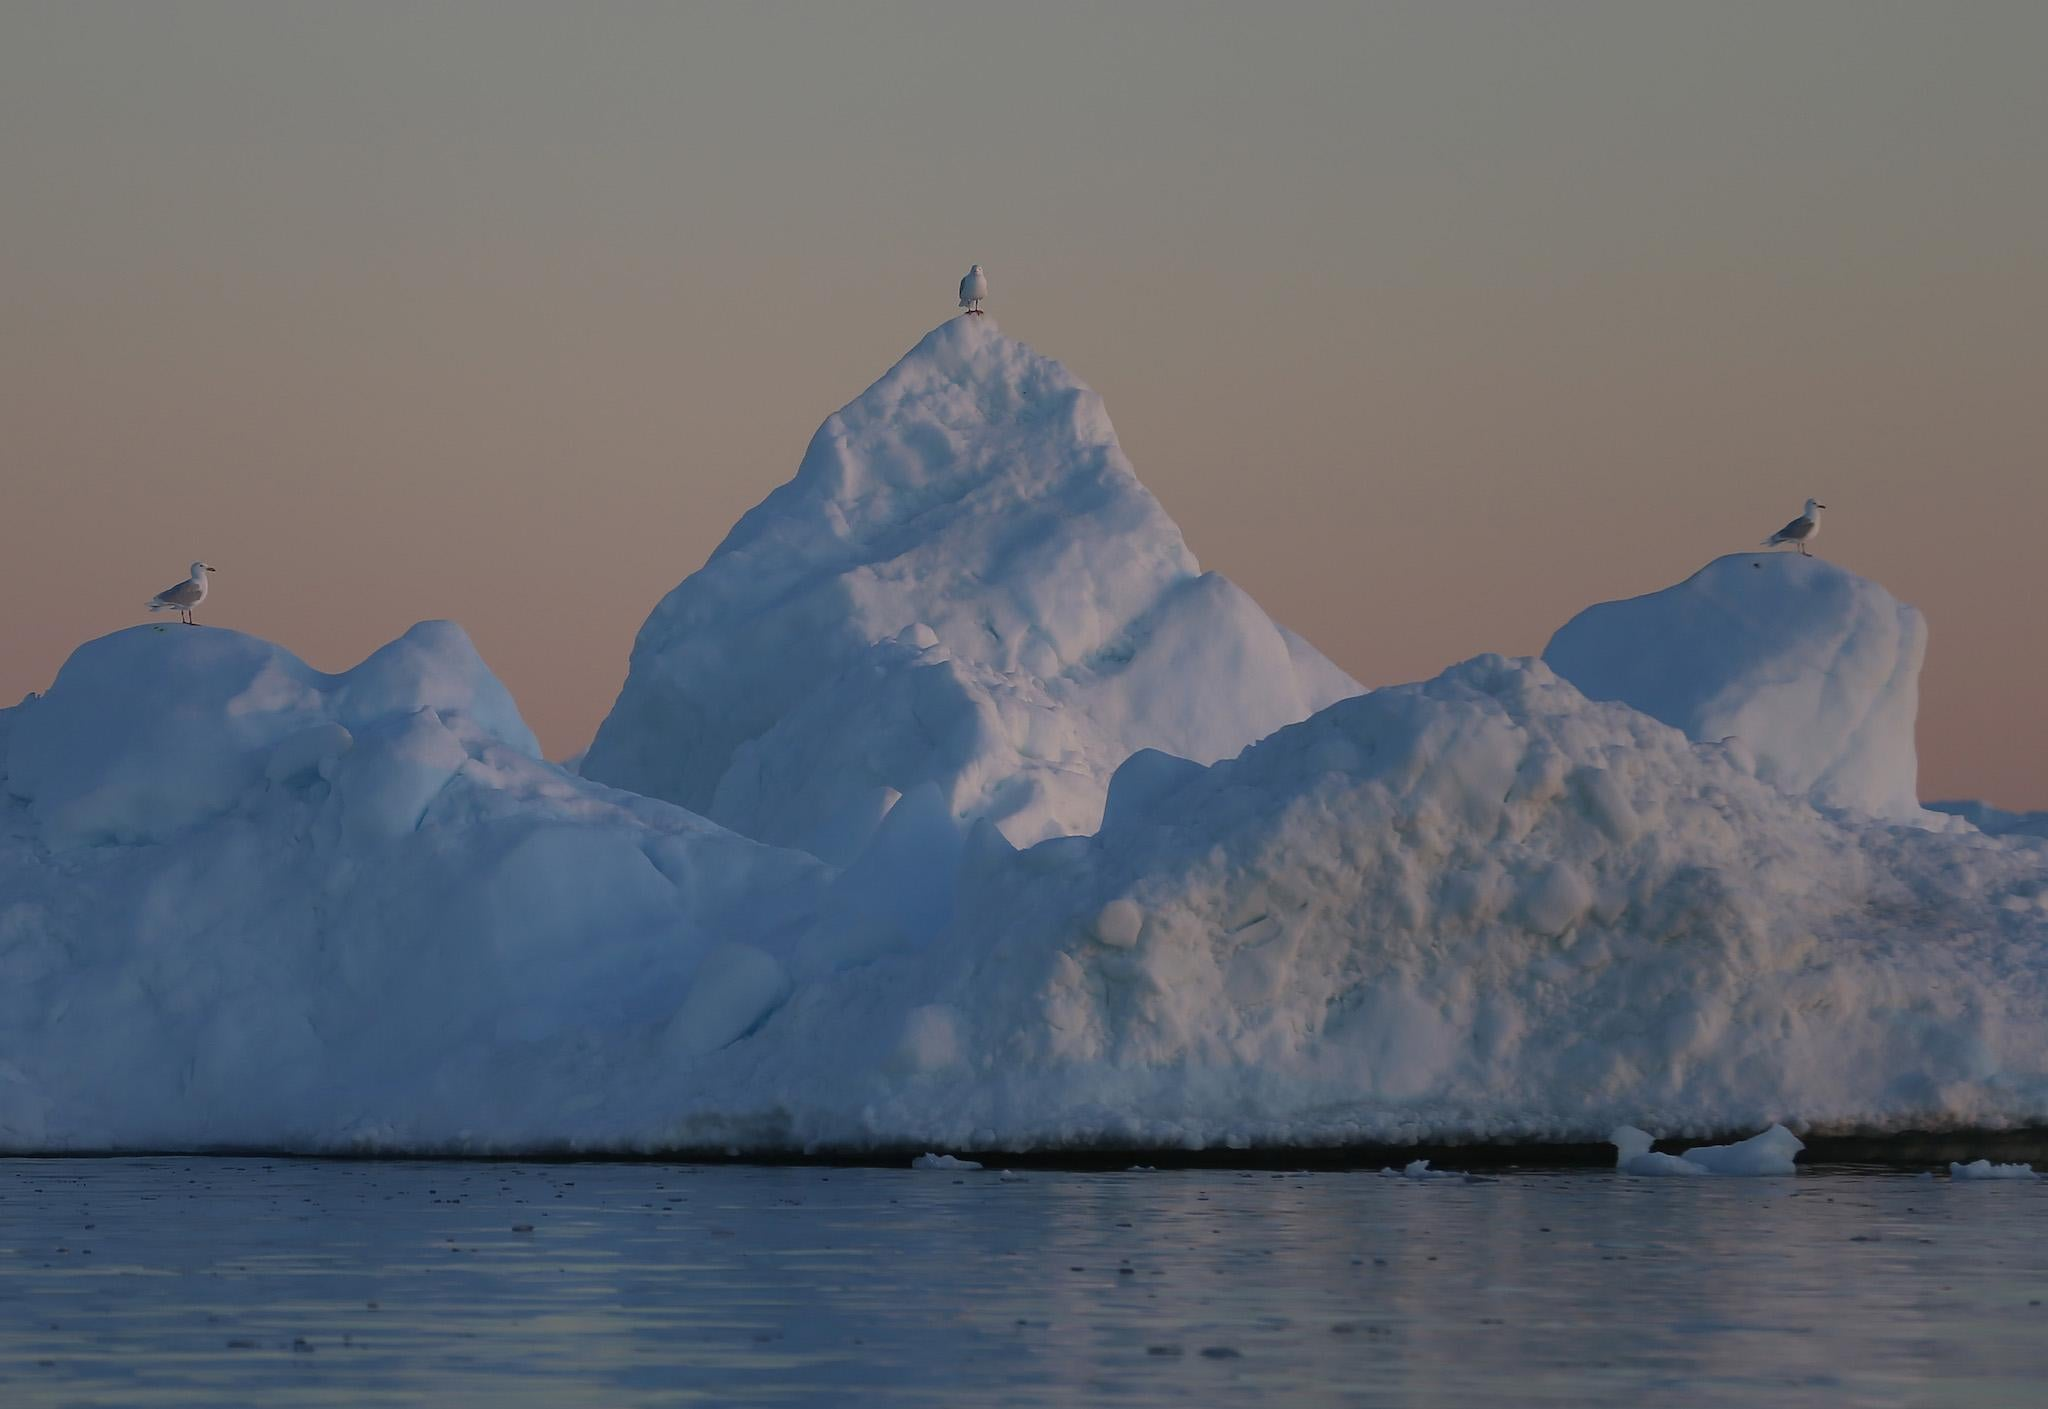 Arctic and Antarctic sea ice reaches record lows after section the size of India melts